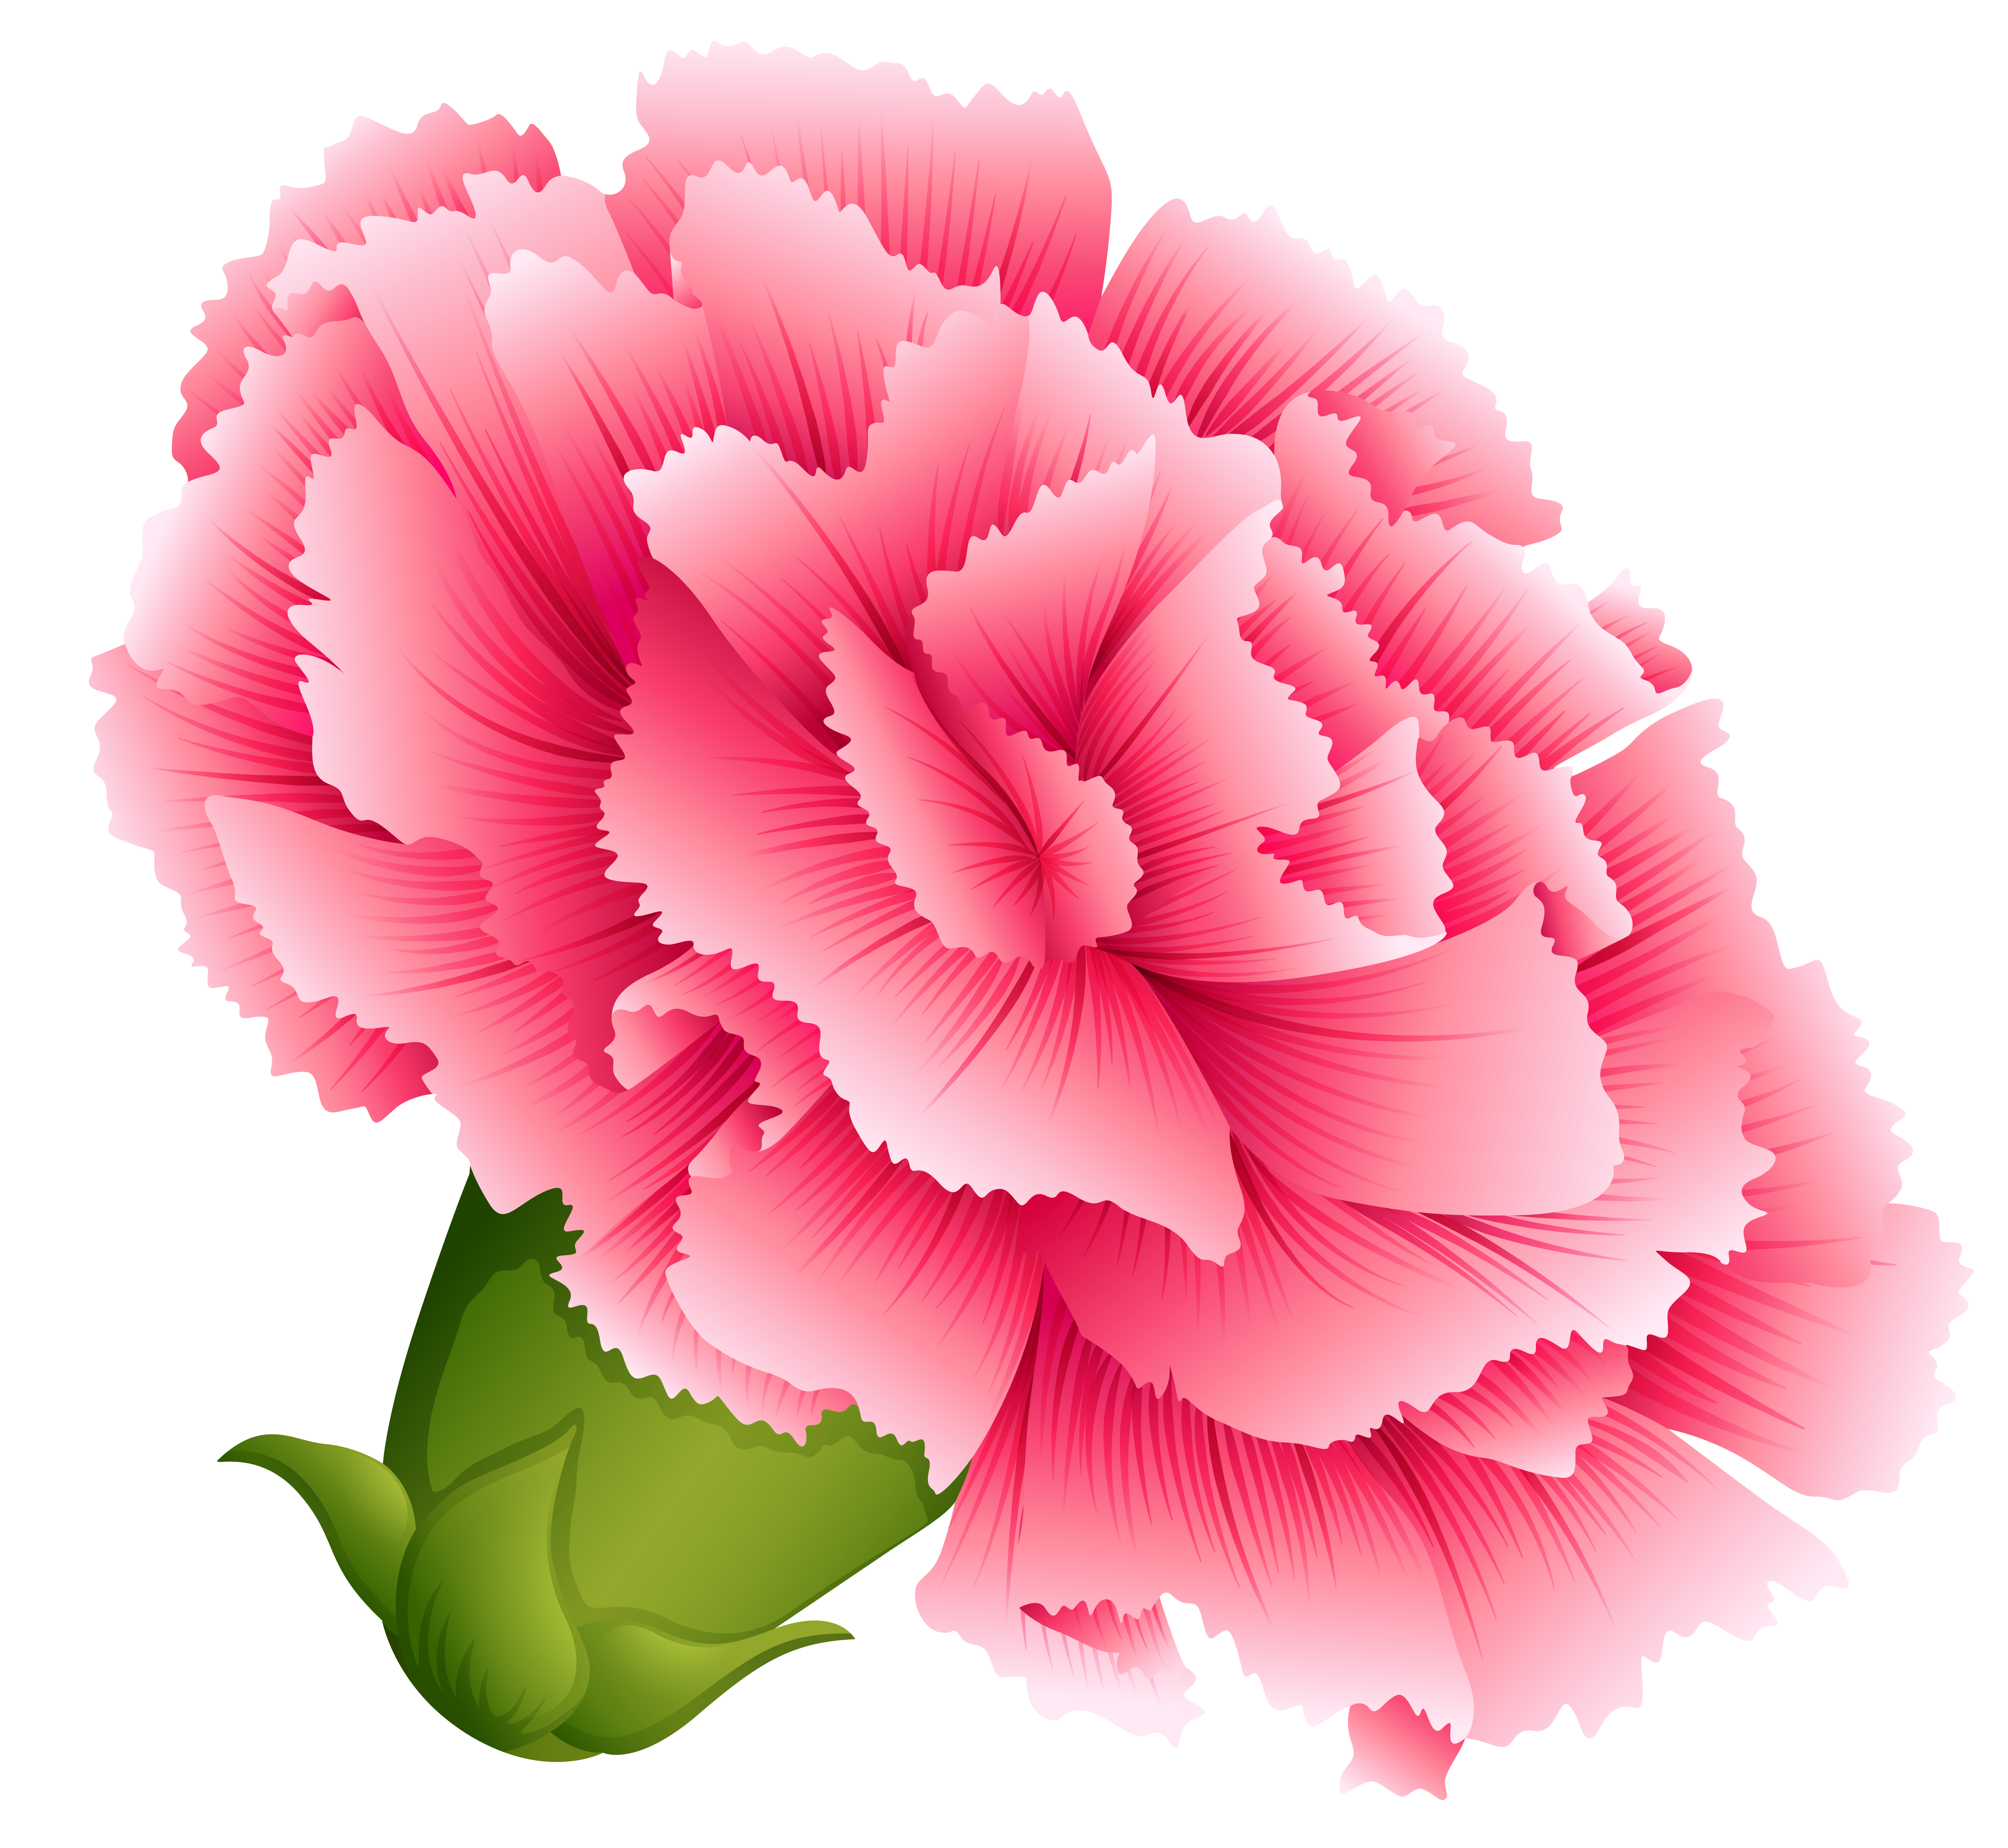 Carnation flower png. Pink clipart image gallery